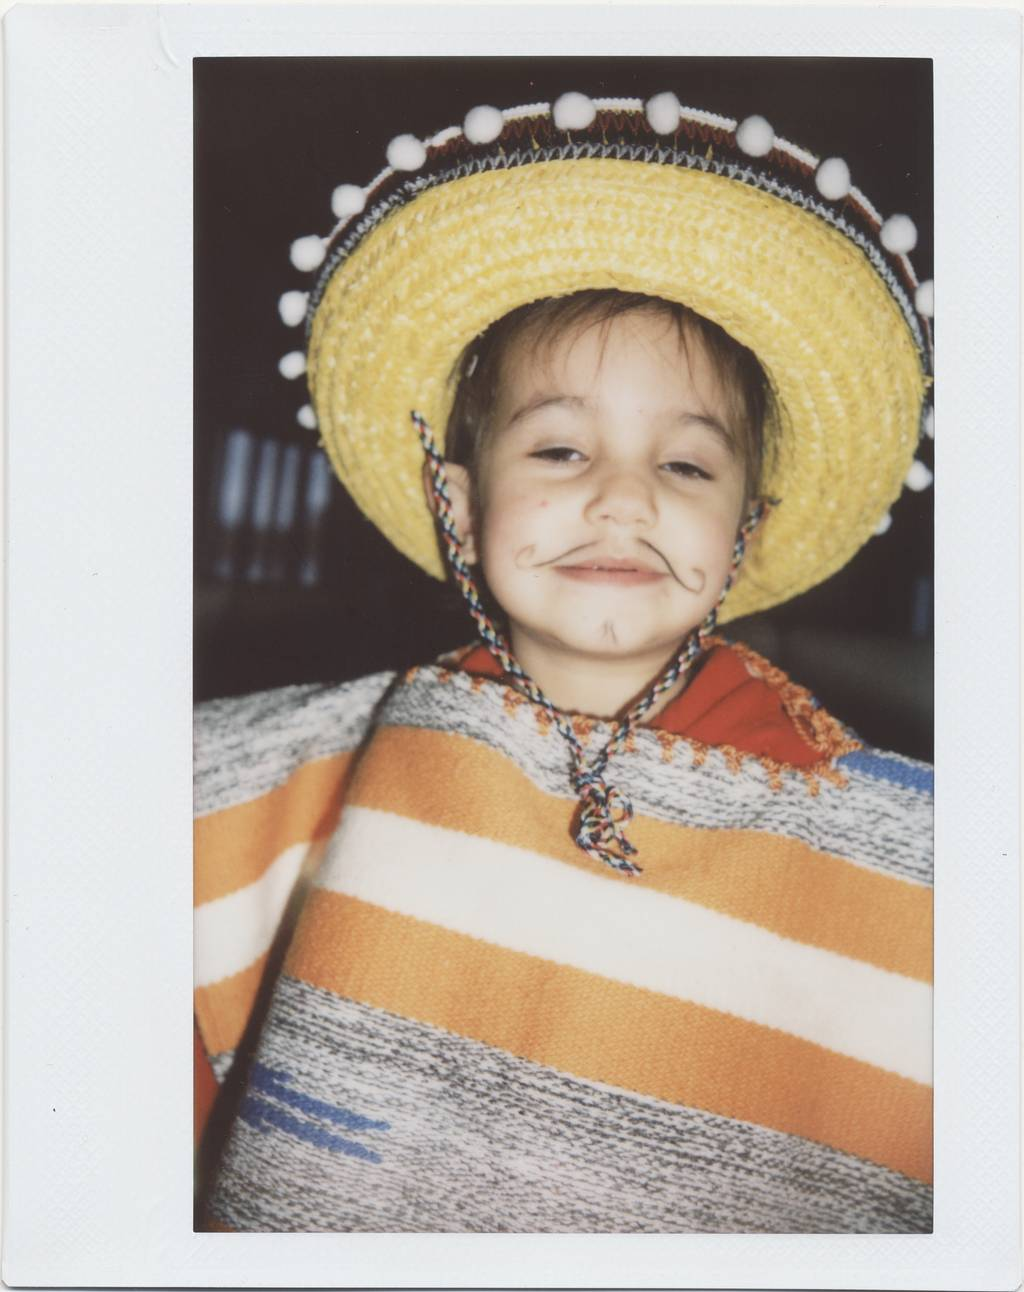 Instax 210 – Fun in an instant.